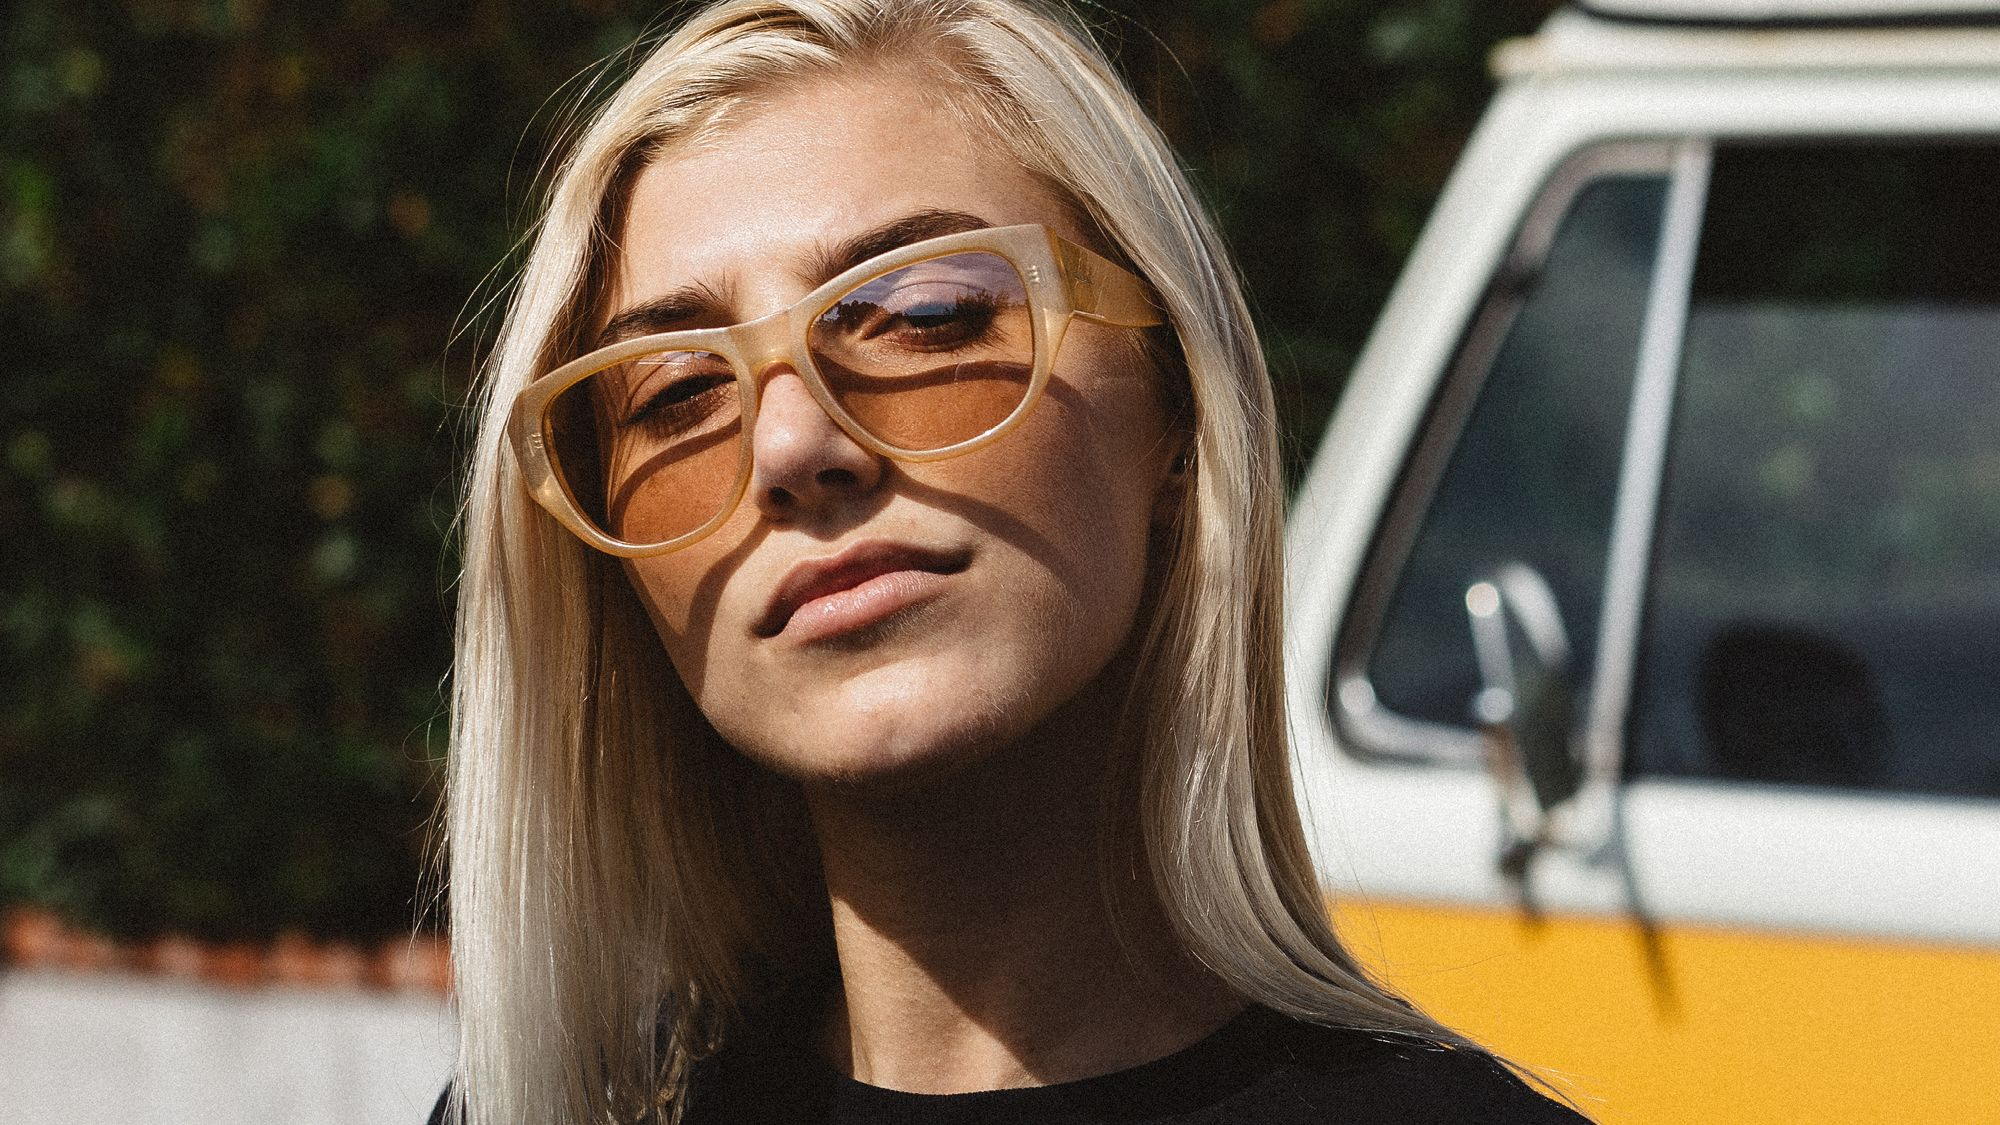 A signature frame by Noa Deane. Reminiscent of a frame from the Mid 90's, the Lychee features straight lines and subtle branding.